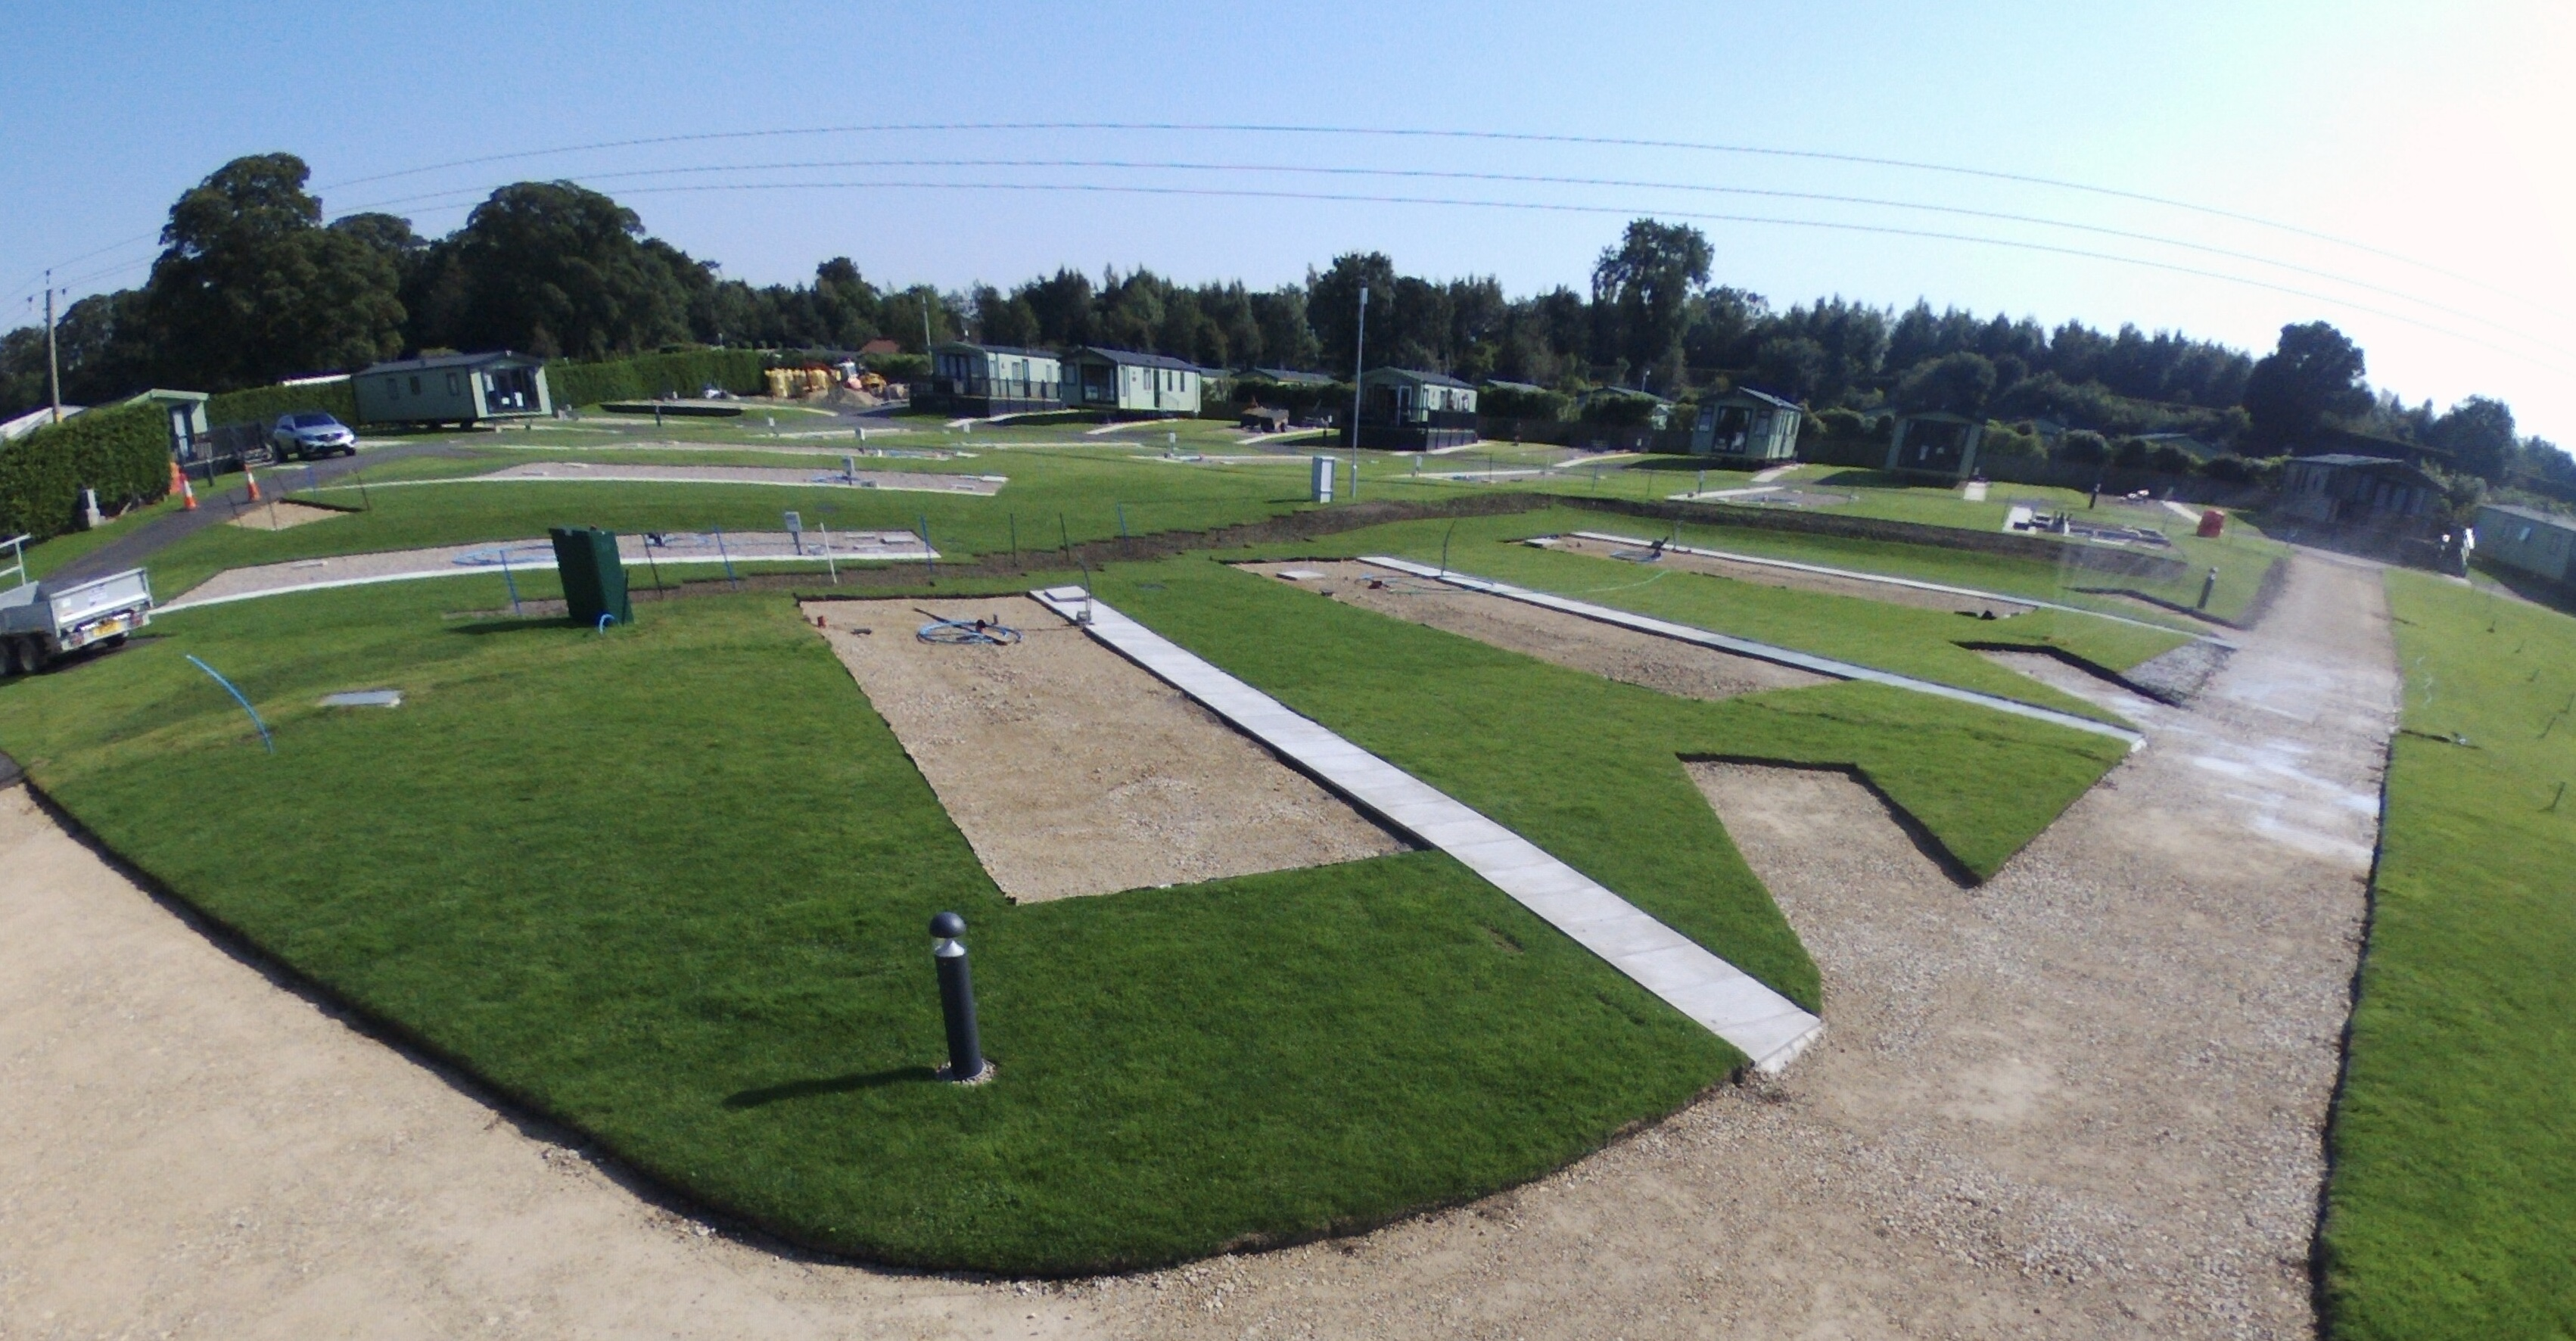 August 6th - Turfing Time!